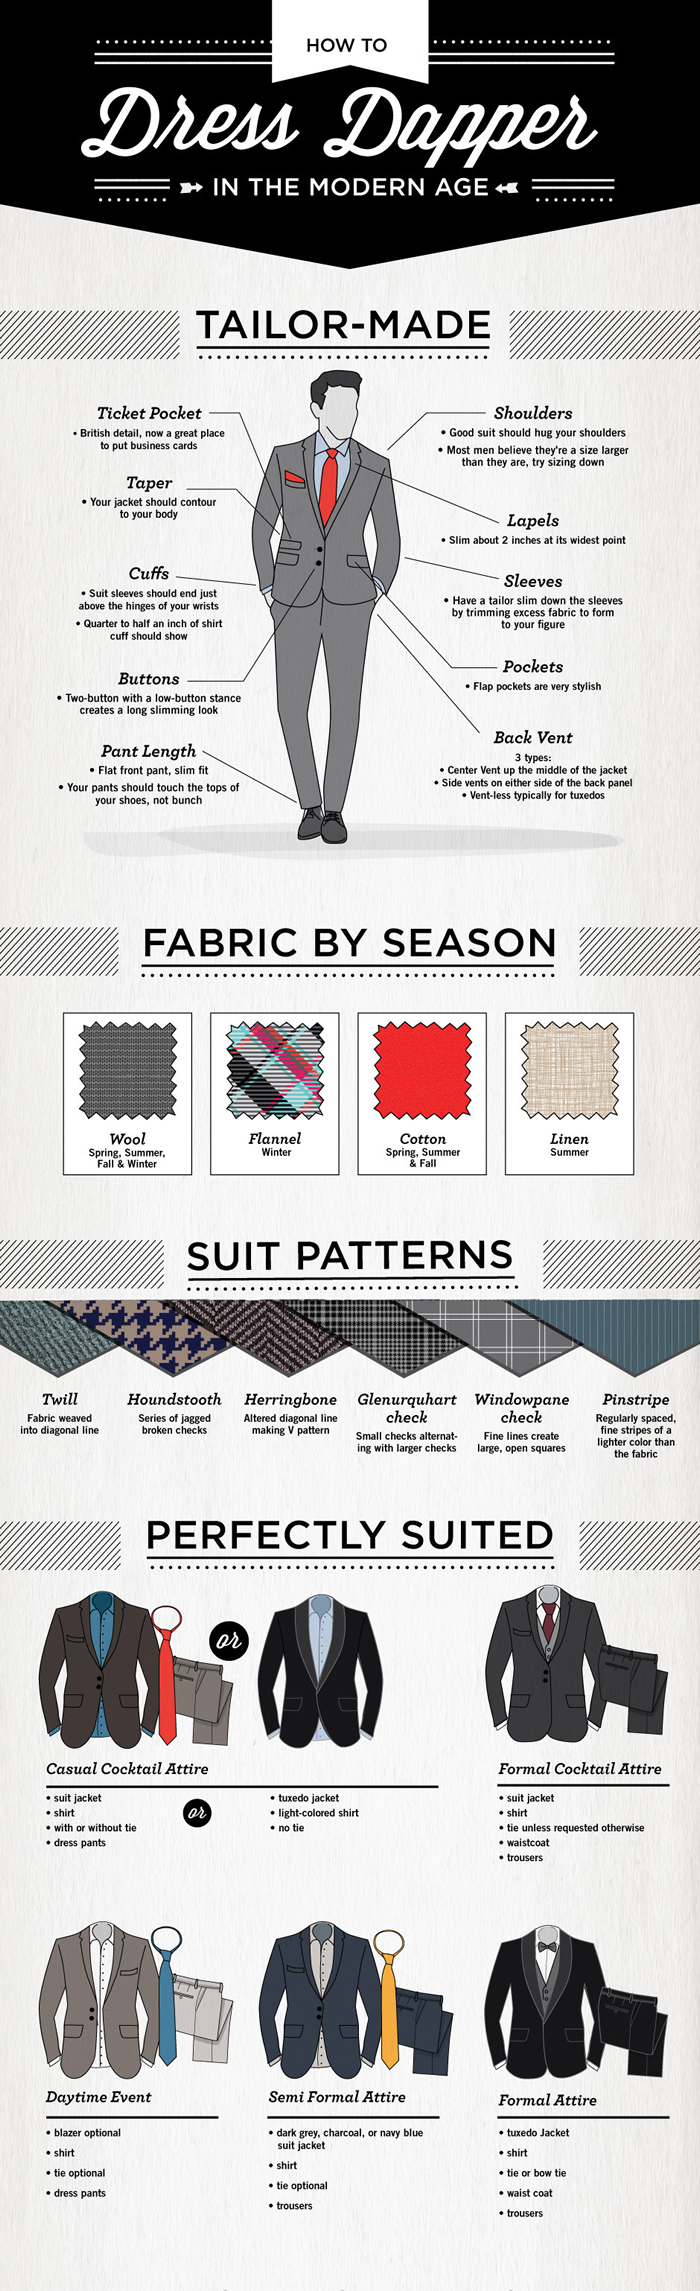 CustomMade: How to Dress Dapper